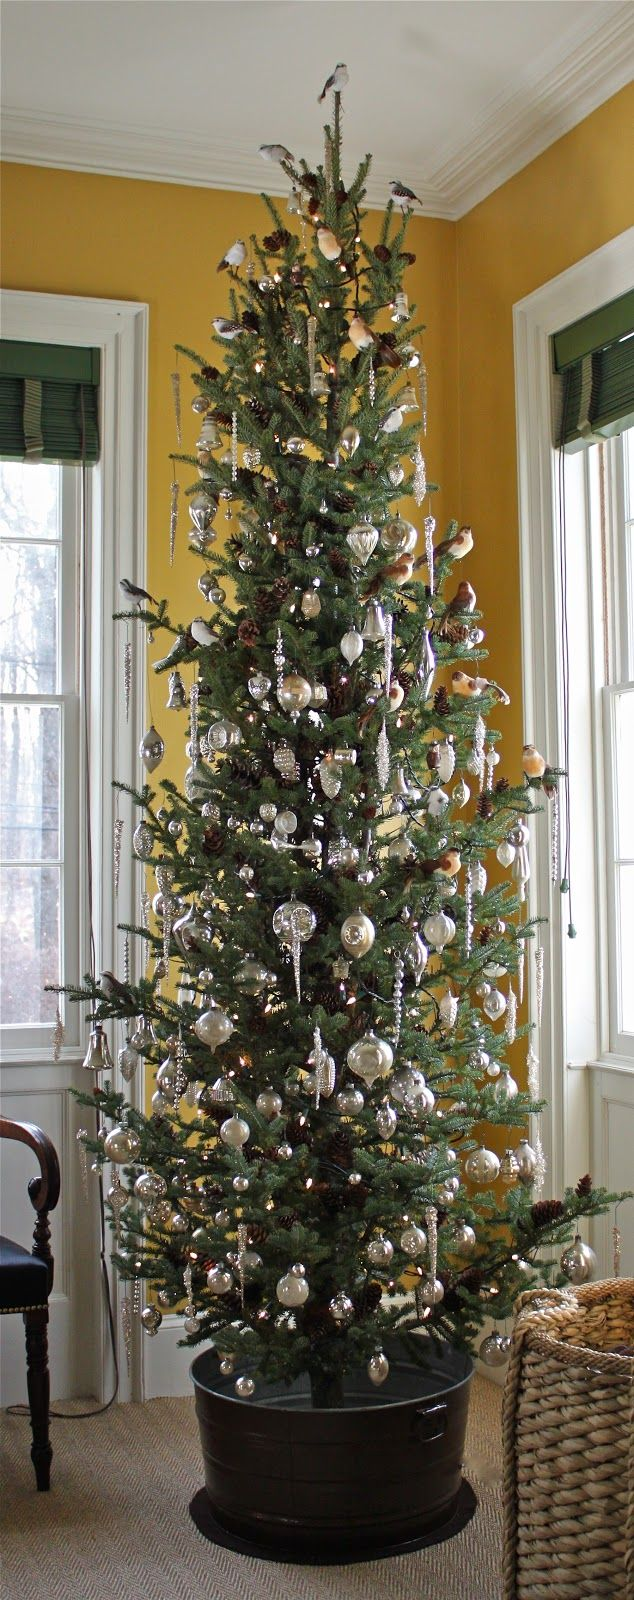 Where To Put The Christmas Tree the 25+ best skinny christmas tree ideas on pinterest | white